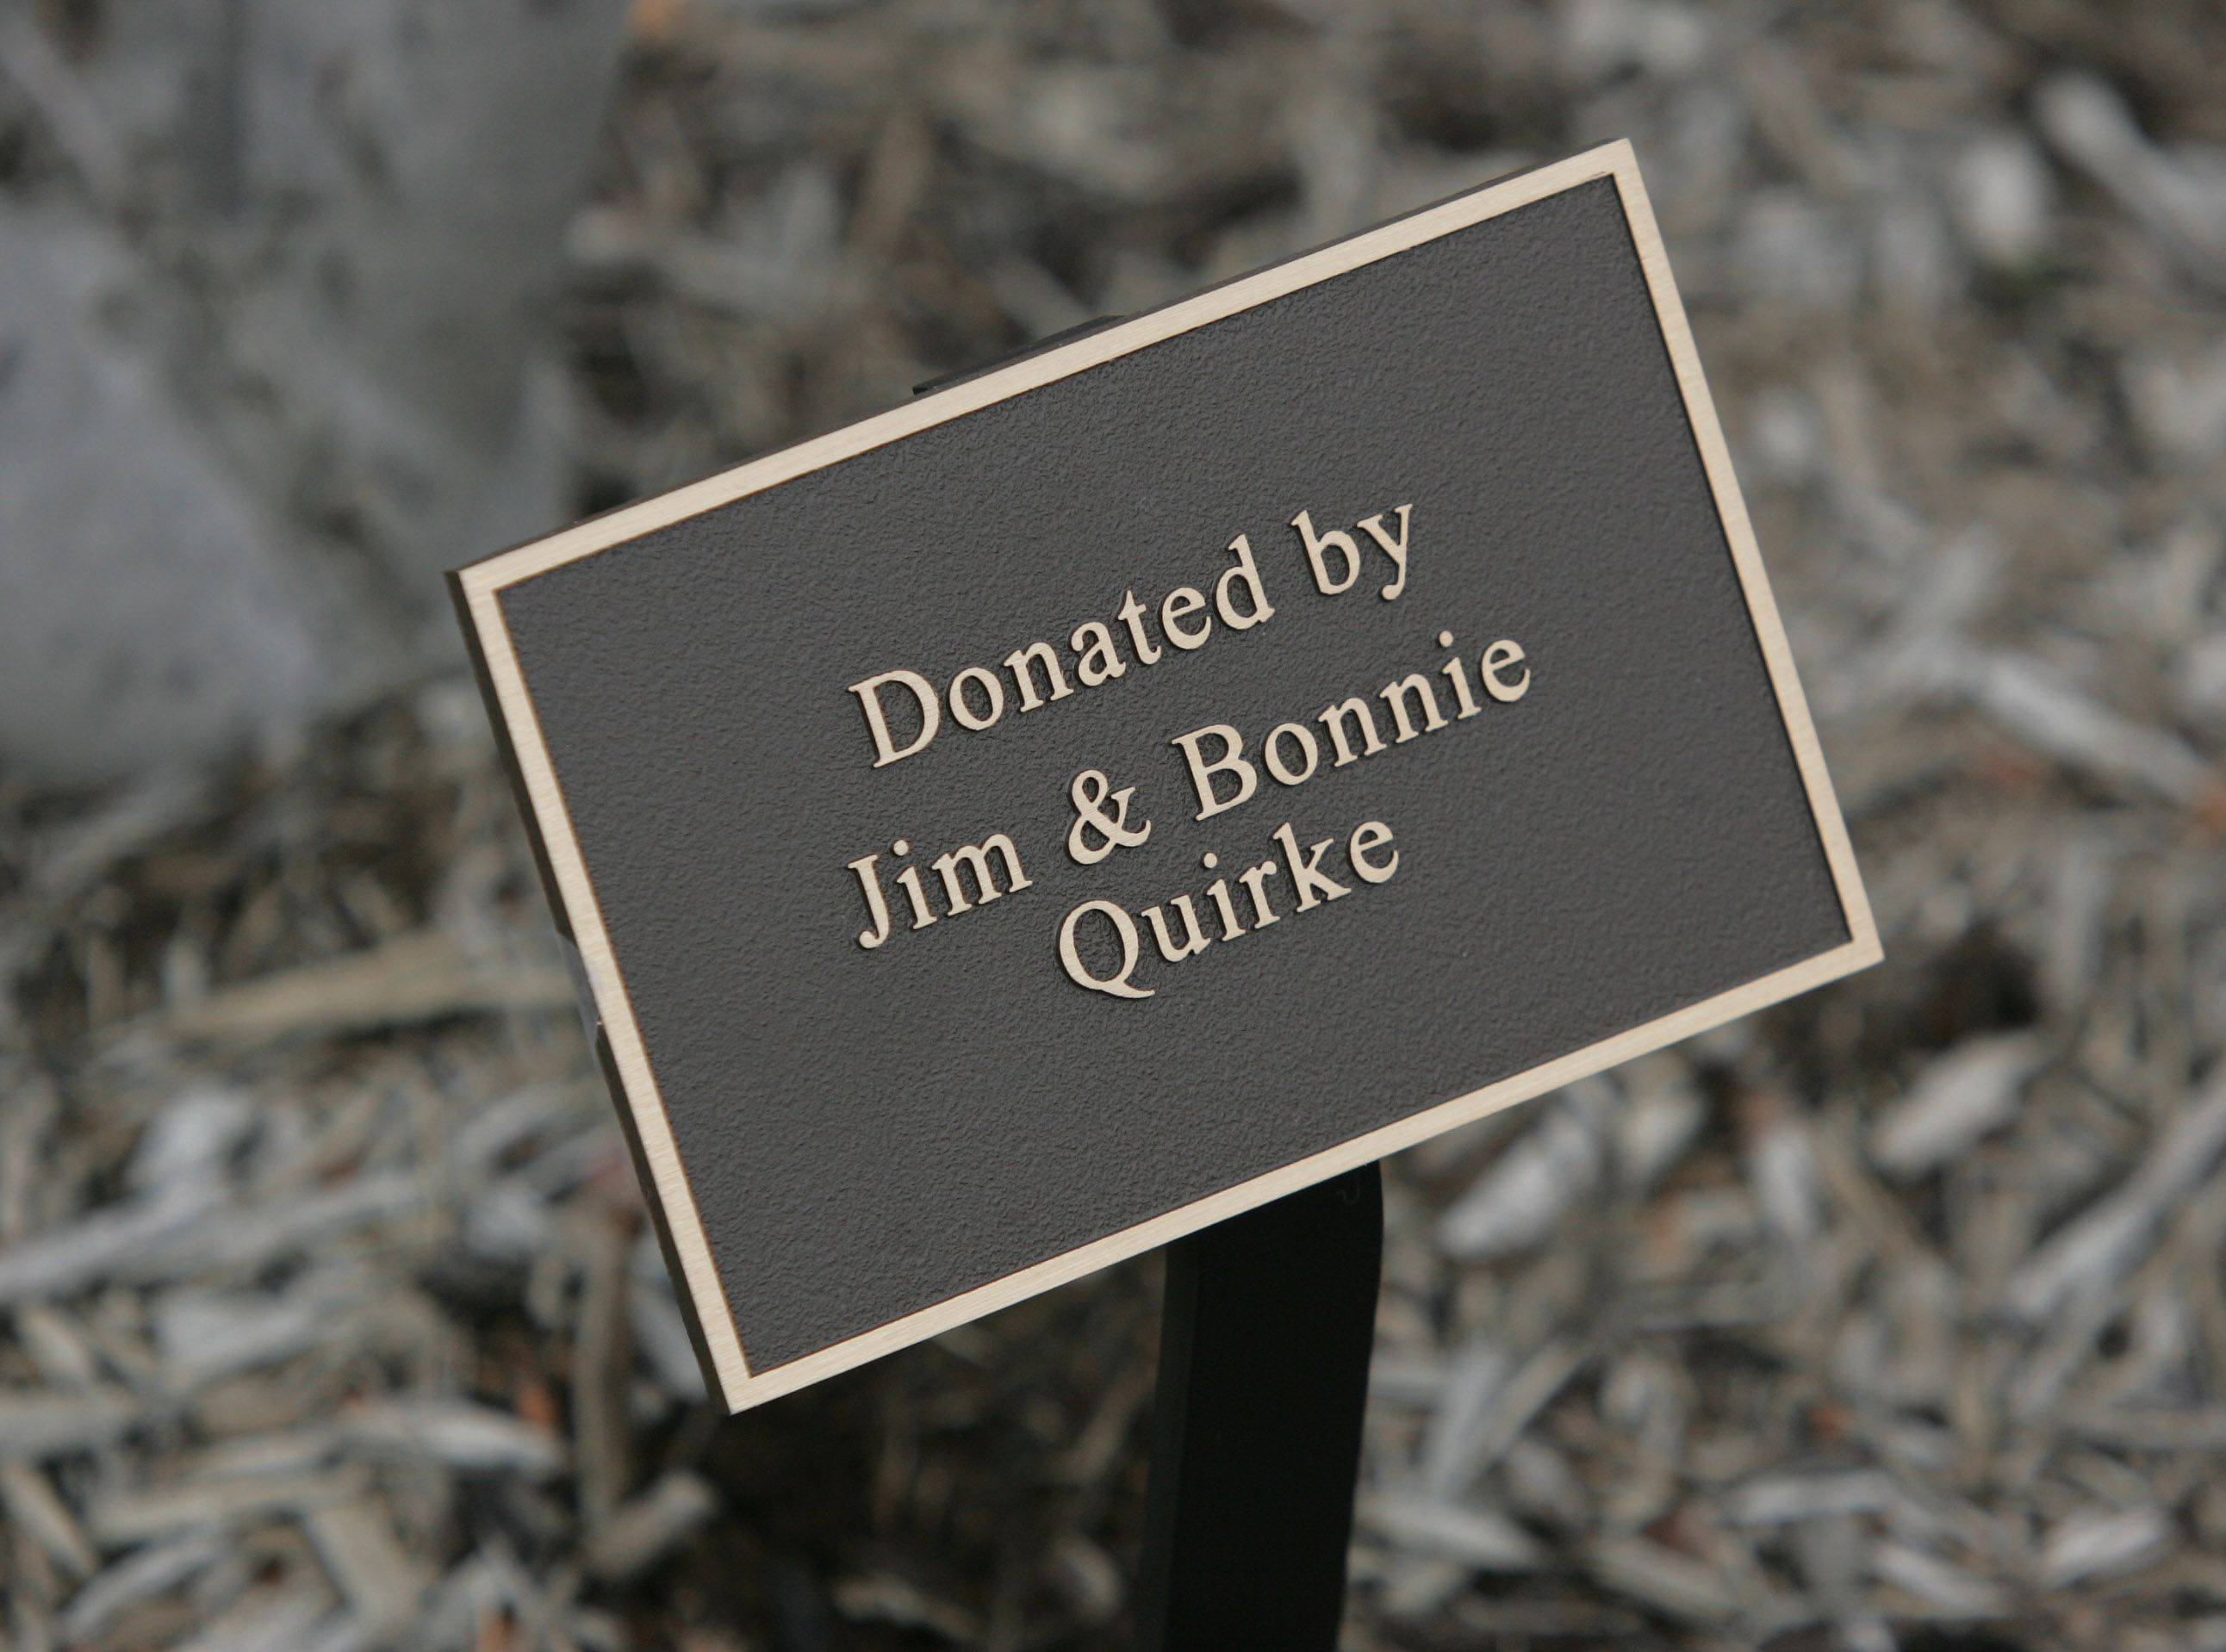 Cook Memorial Public Library board President Bonnie Quirke and her husband, Jim, sponsored a tree at the Libertyville facility.